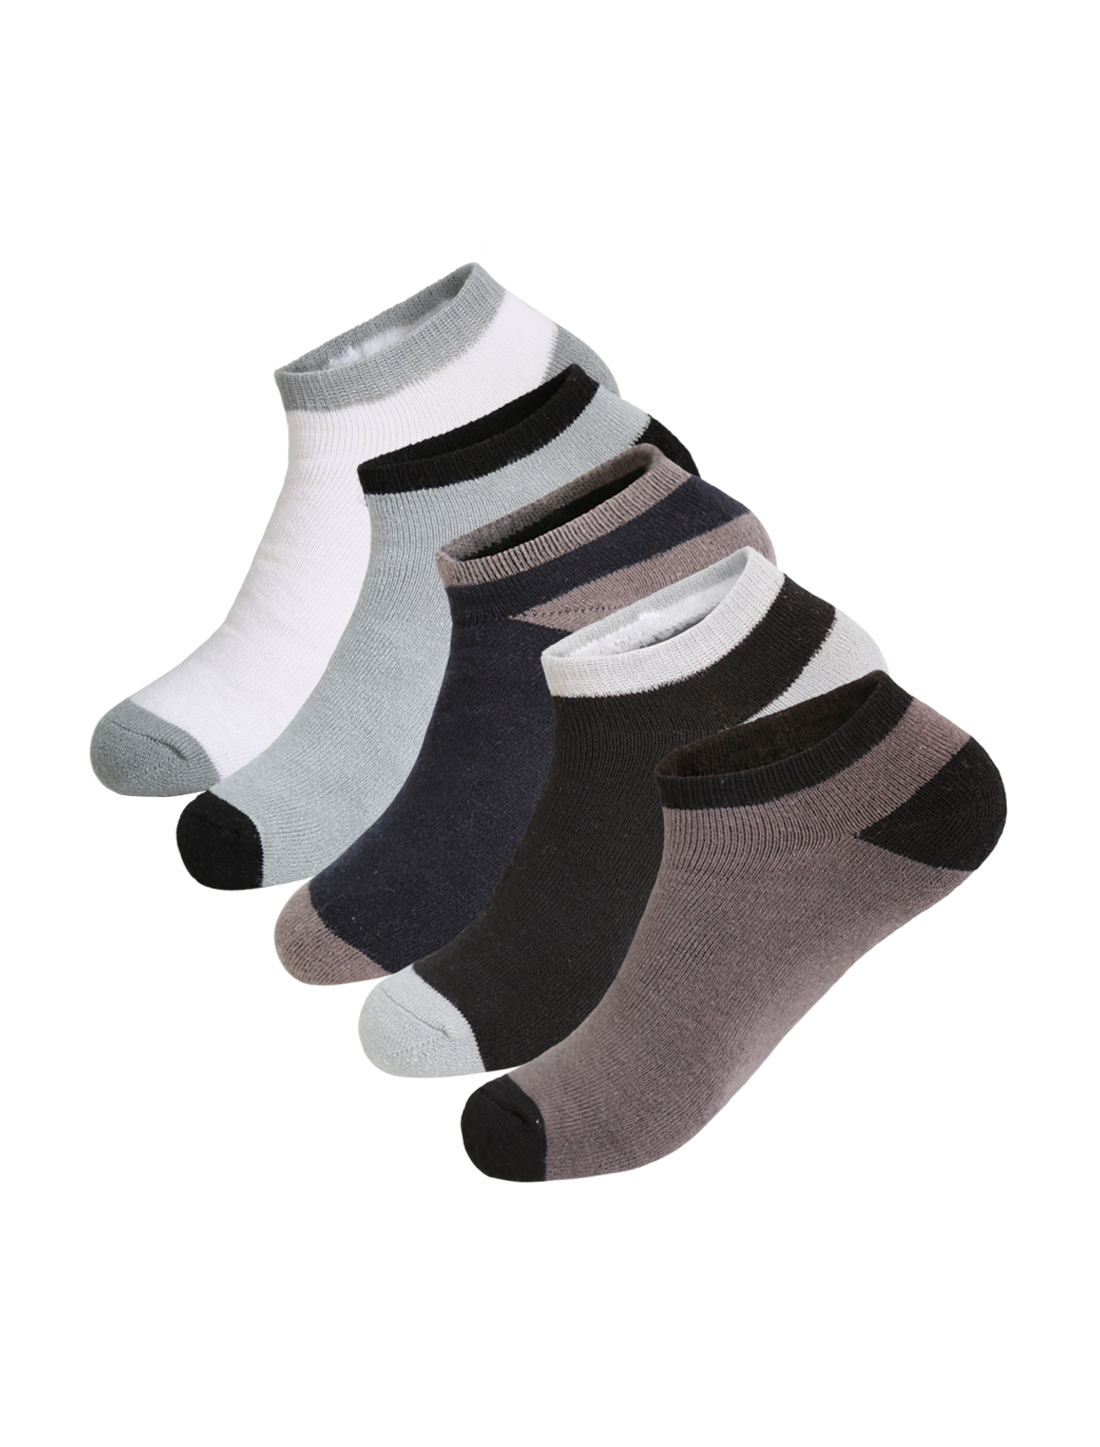 Man 5 pair Color Block Breathable No Show Boat Socks Size 10-12